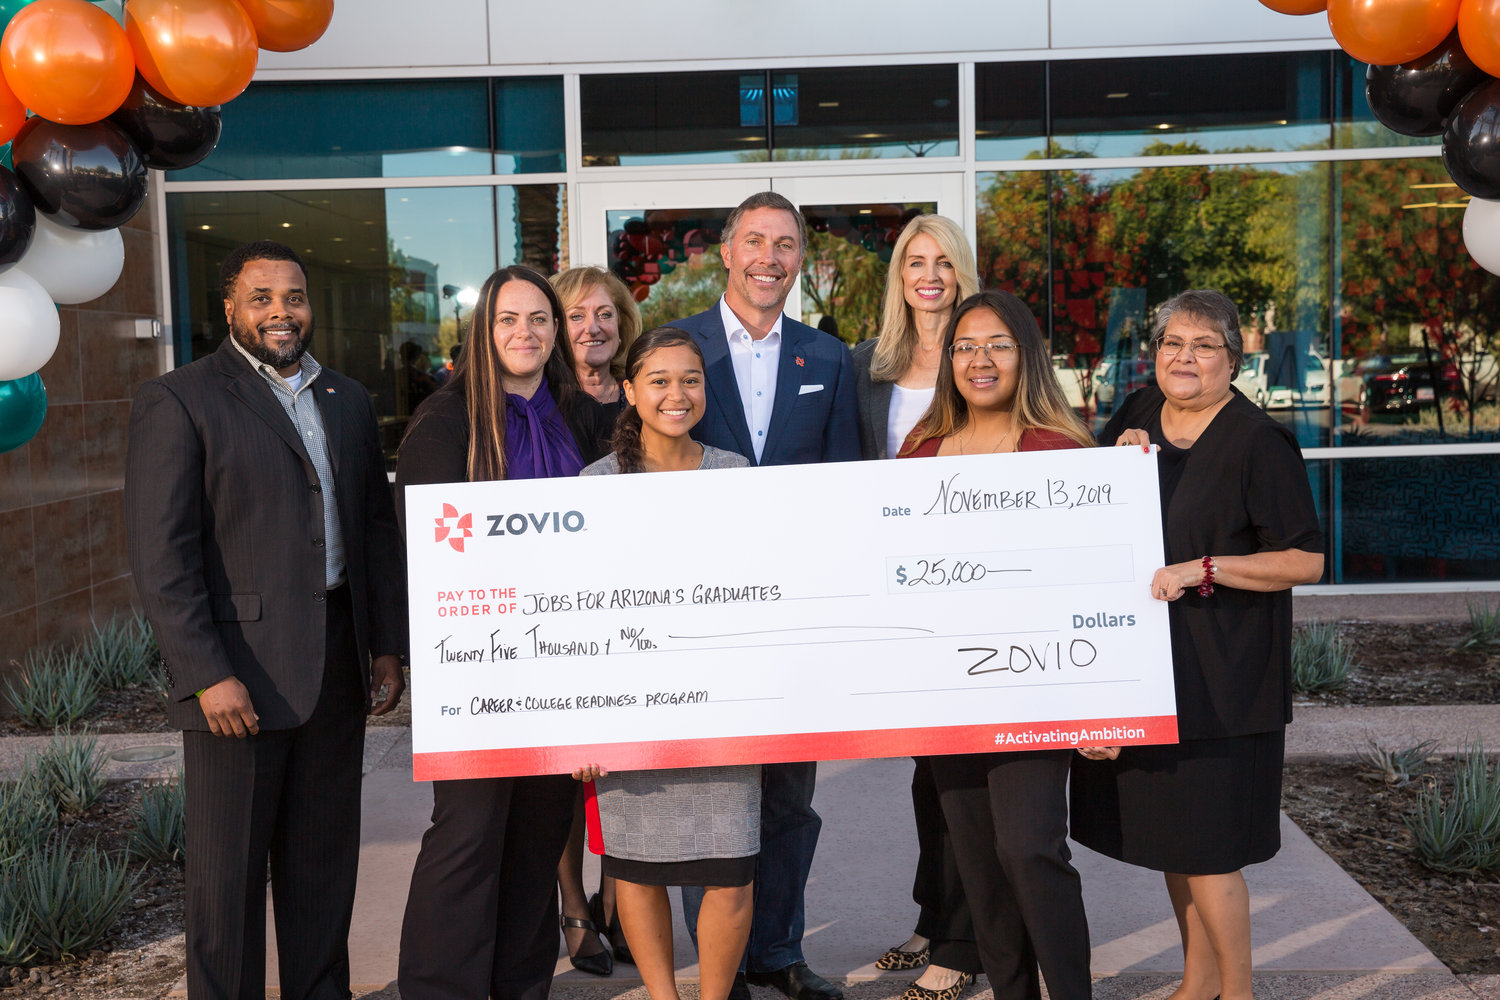 Zovio presented Jobs for Arizona's Graduates with a $25,000 grant at Zovio's ribbon-cutting ceremony at its new corporate headquarters in Chandler.